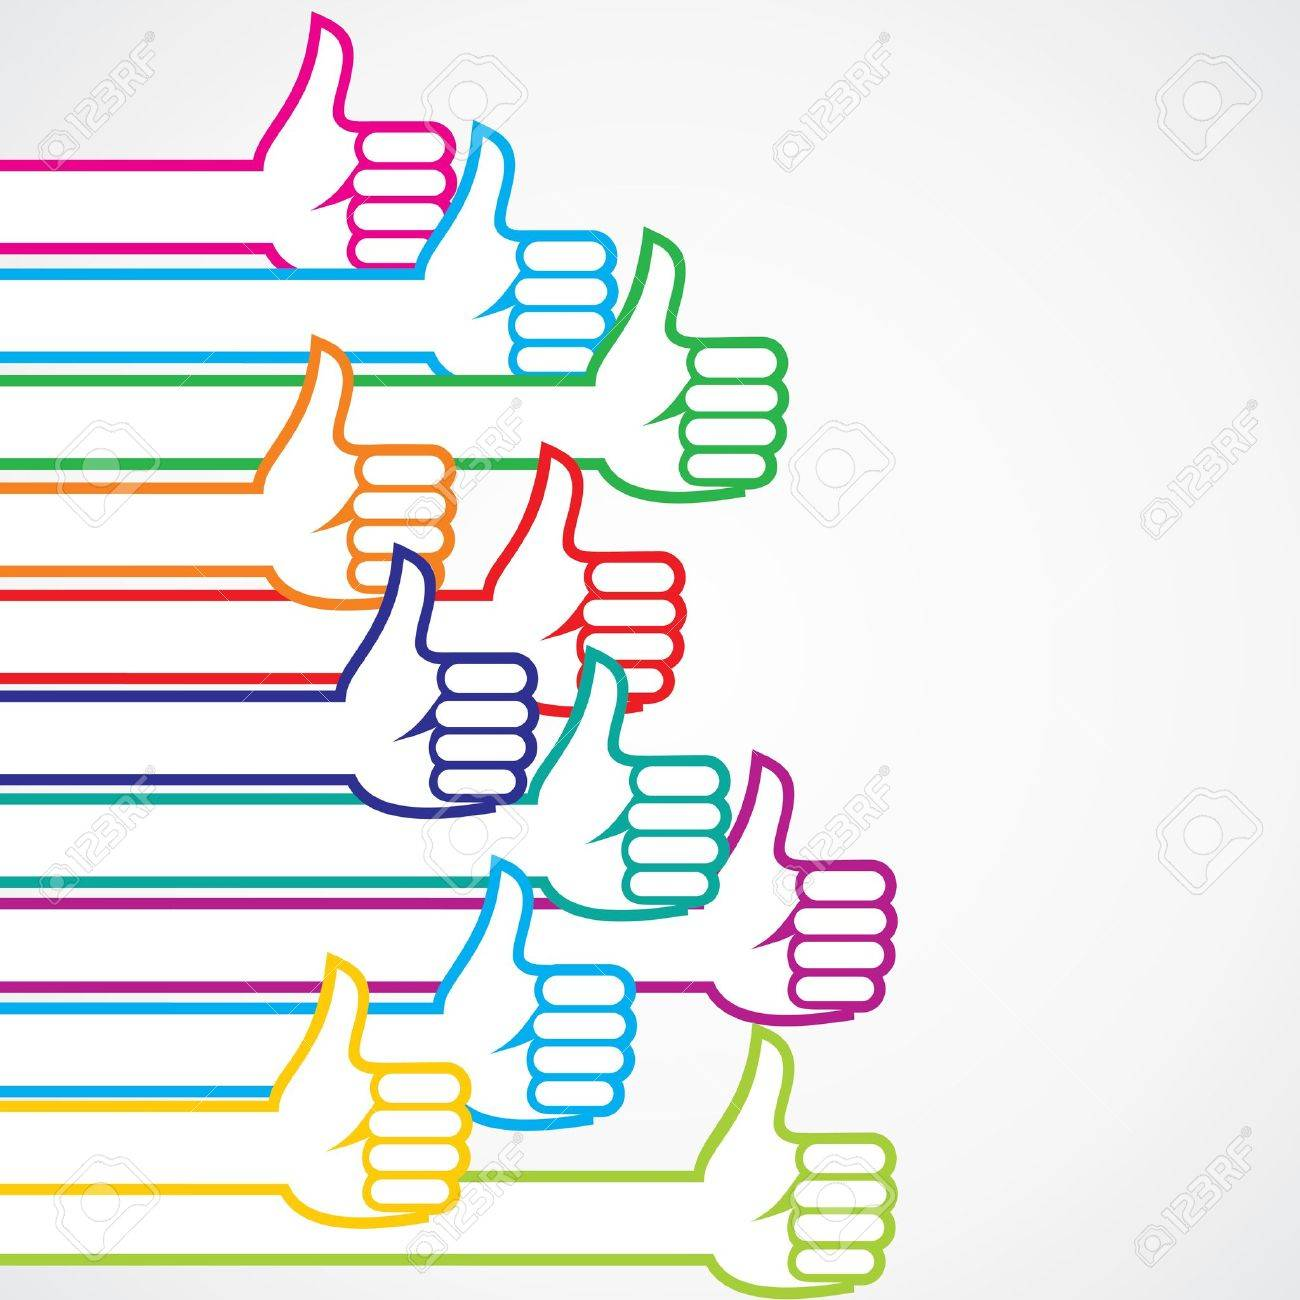 Colorful like or thumbs-up sign background  stock vector Stock Vector - 18785547